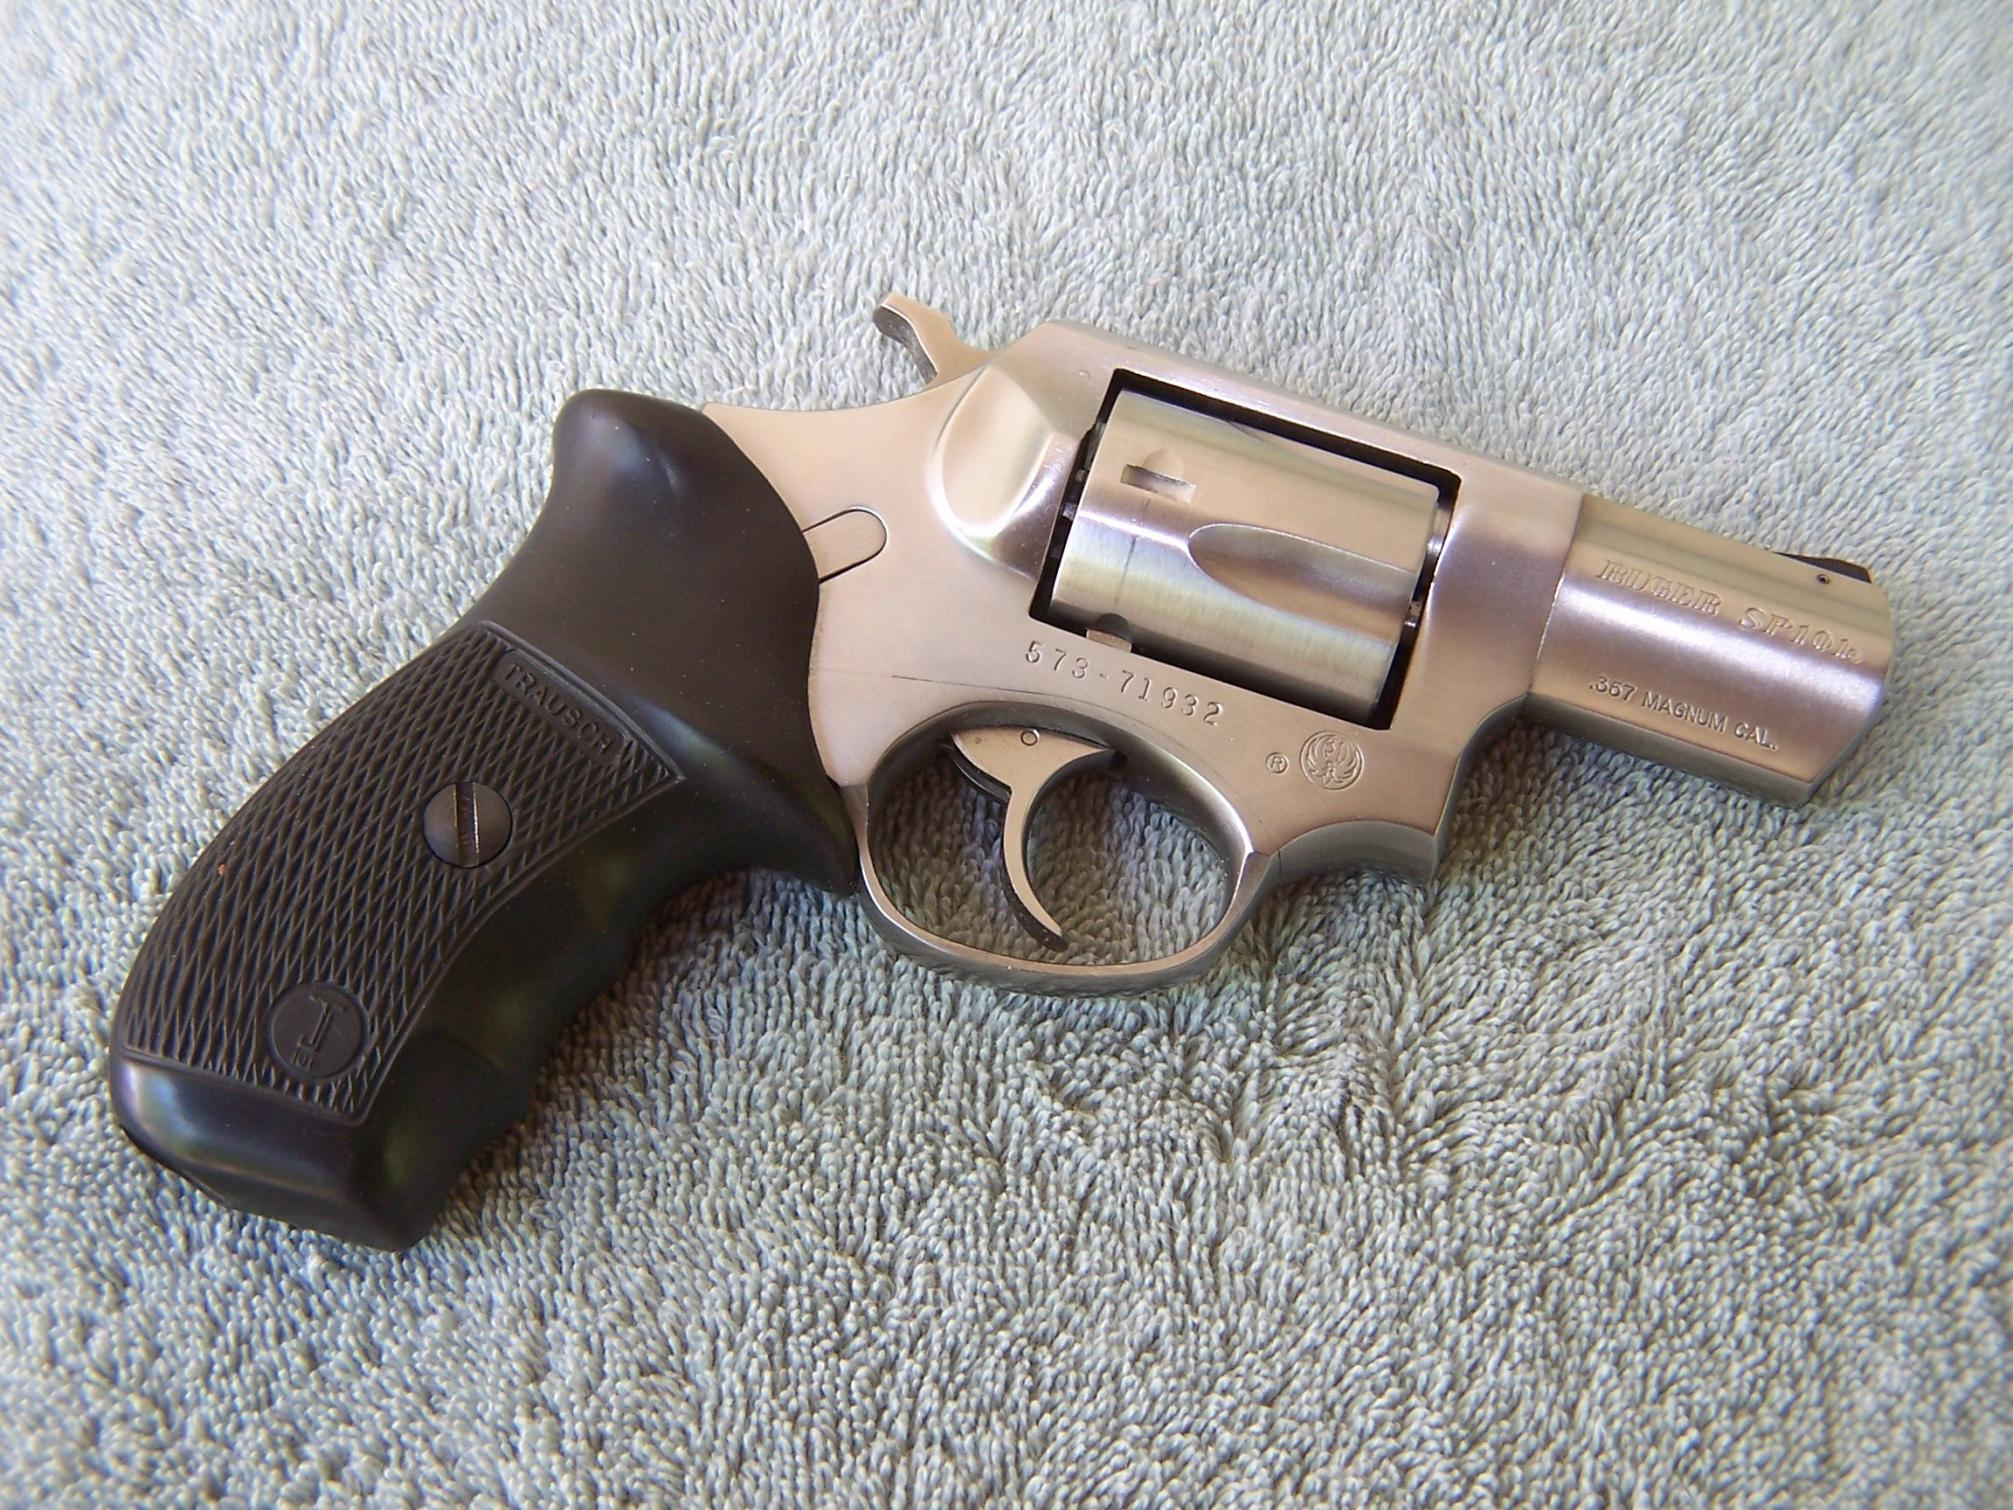 What is your Favorite Double Action Revolver??-573-71932.jpg